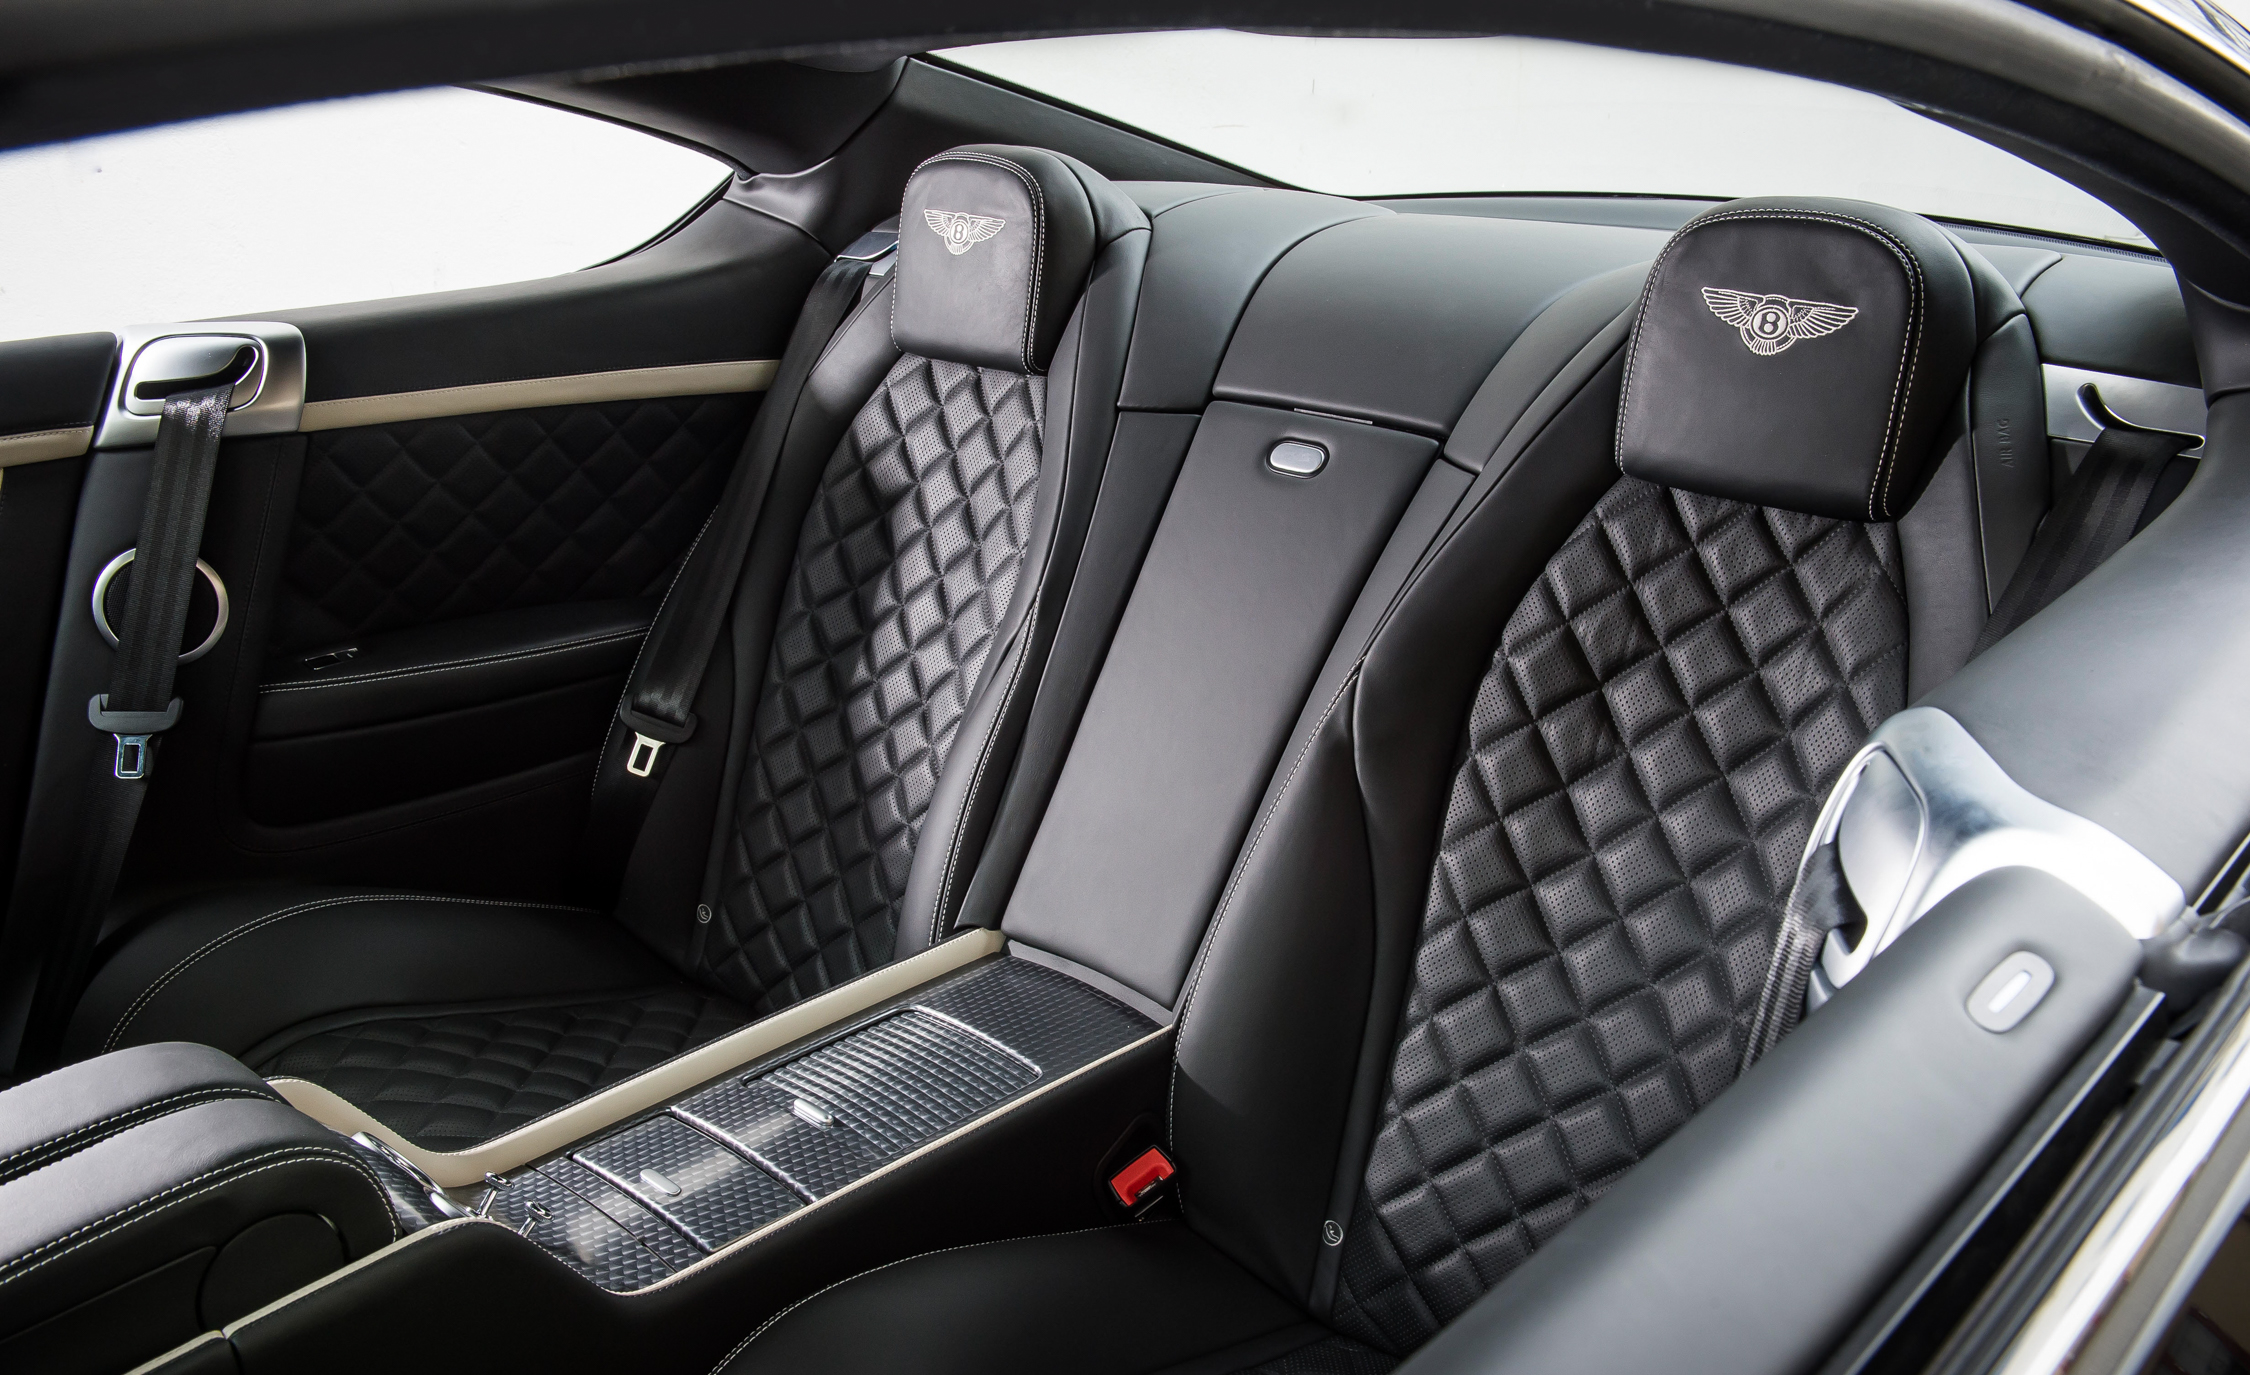 2016 Bentley Continental GT Speed Interior Rear Passenger Seats